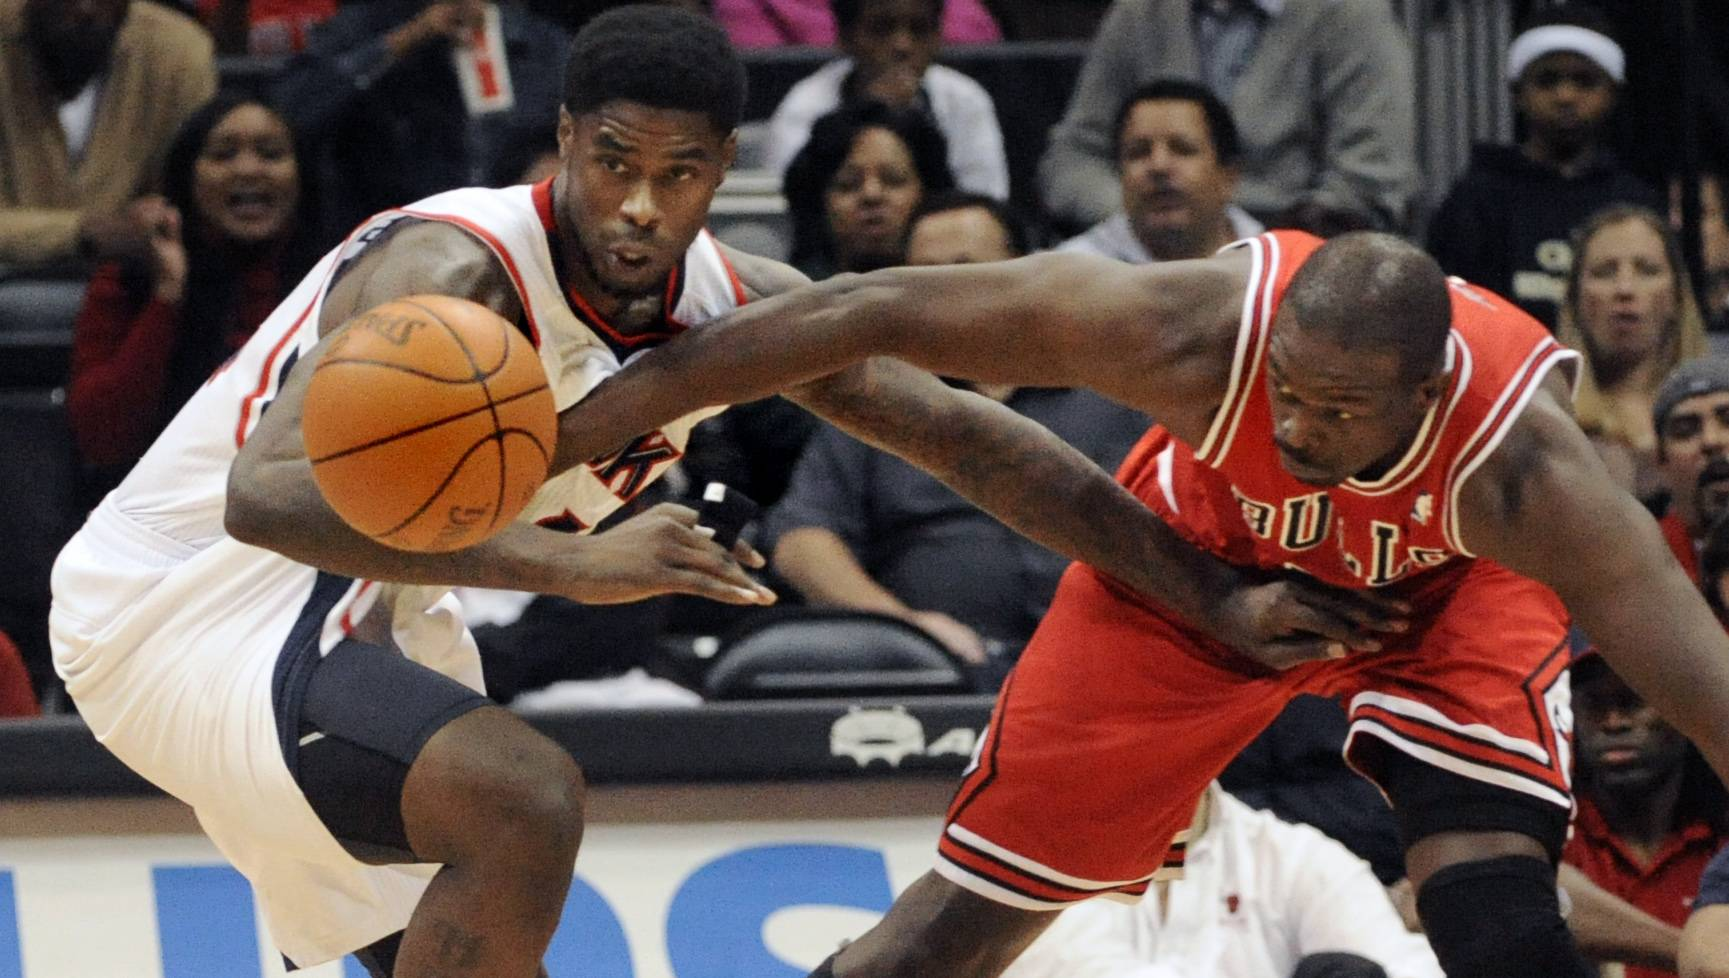 Atlanta Hawks forward Marvin Williams, left, battles for a loose ball Saturday with Chicago Bulls forward Luol Deng during the first half of an NBA basketball game in Atlanta.